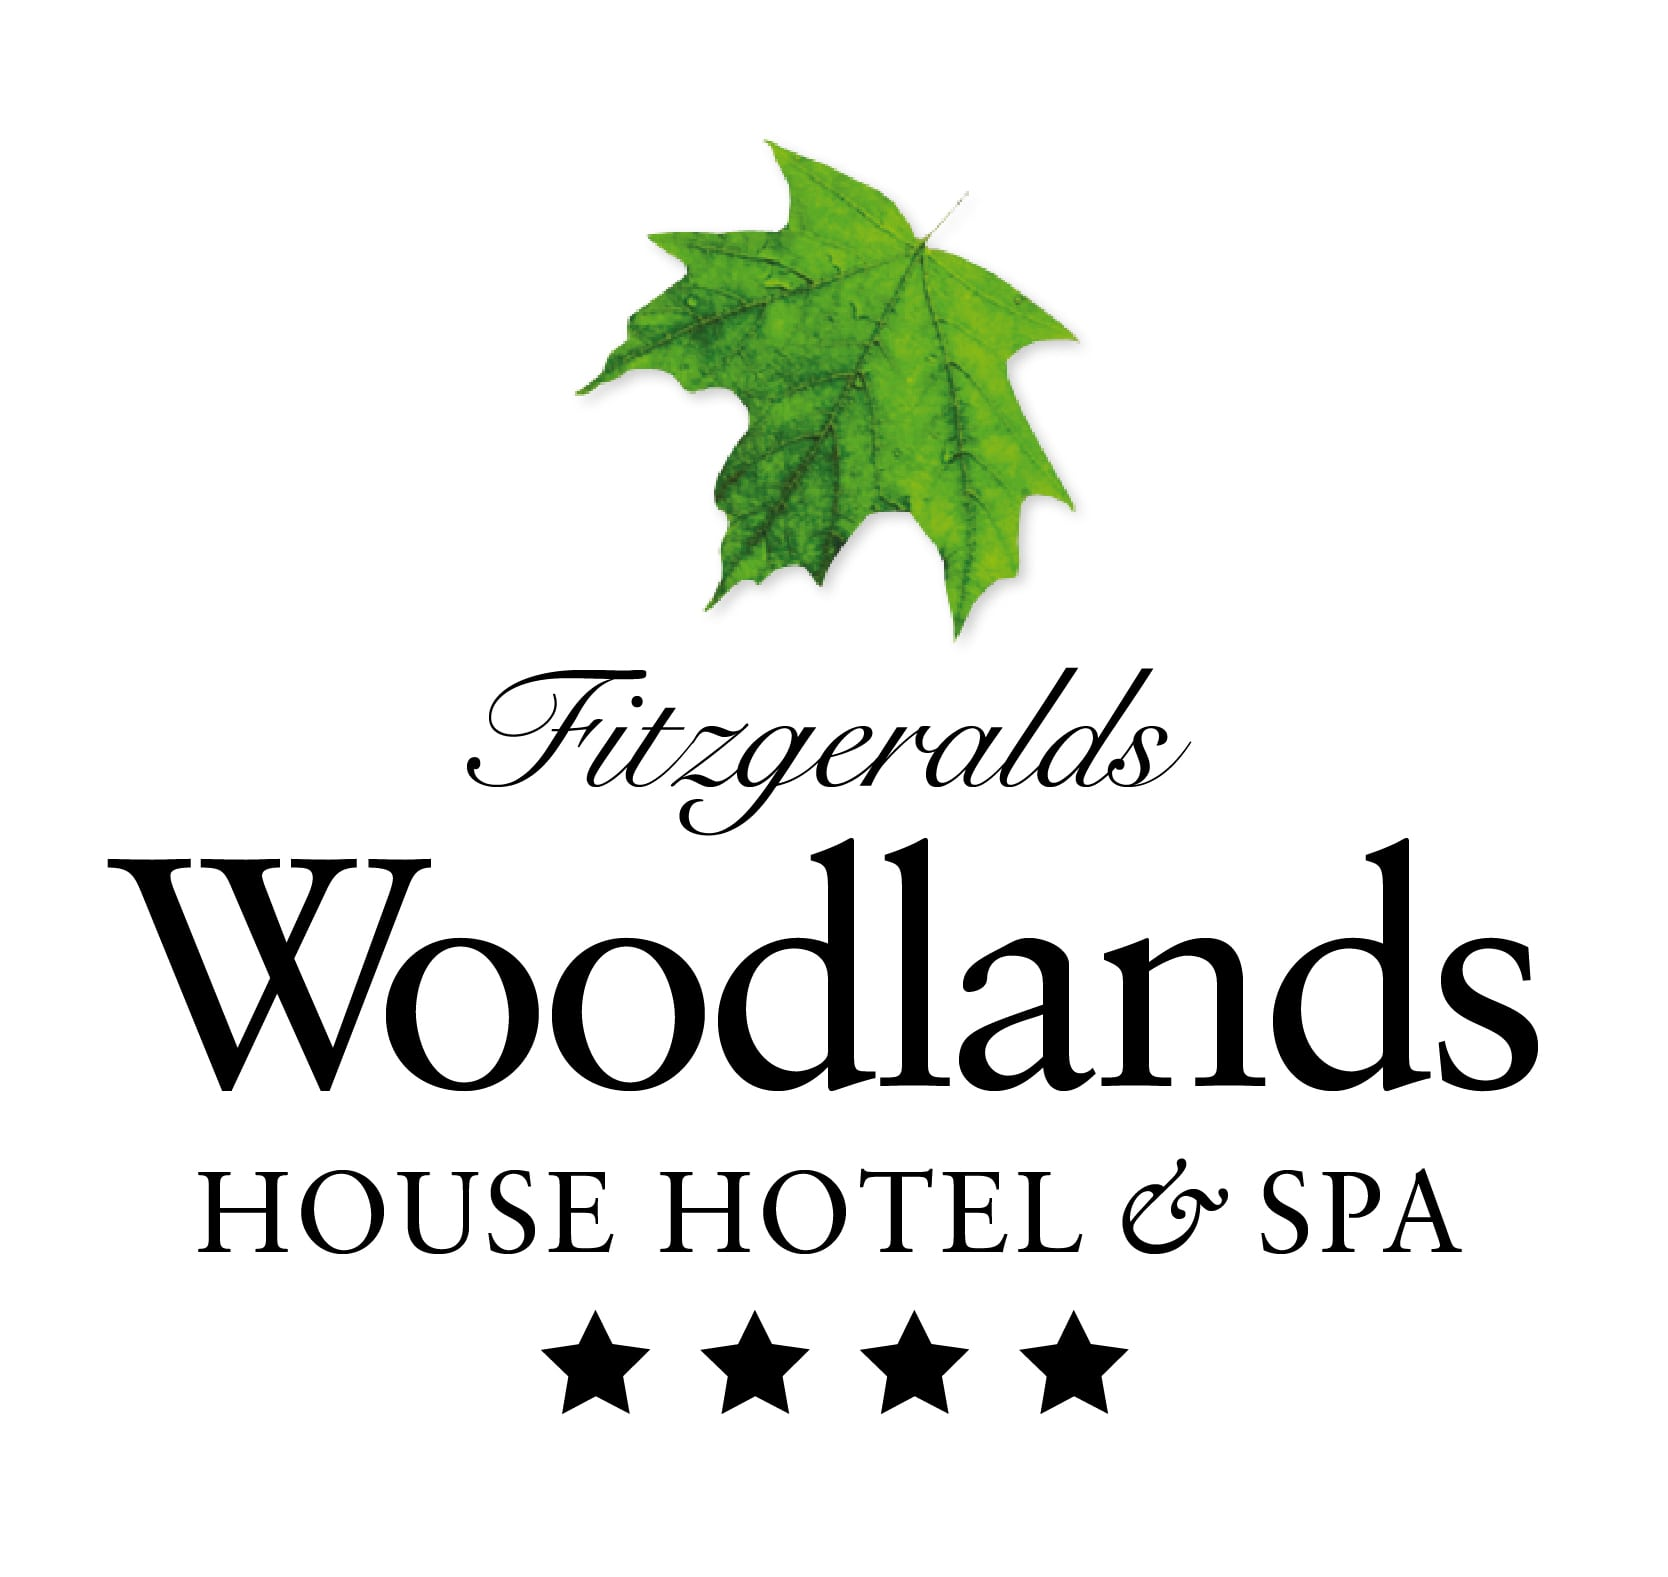 Woodlands House Hotel